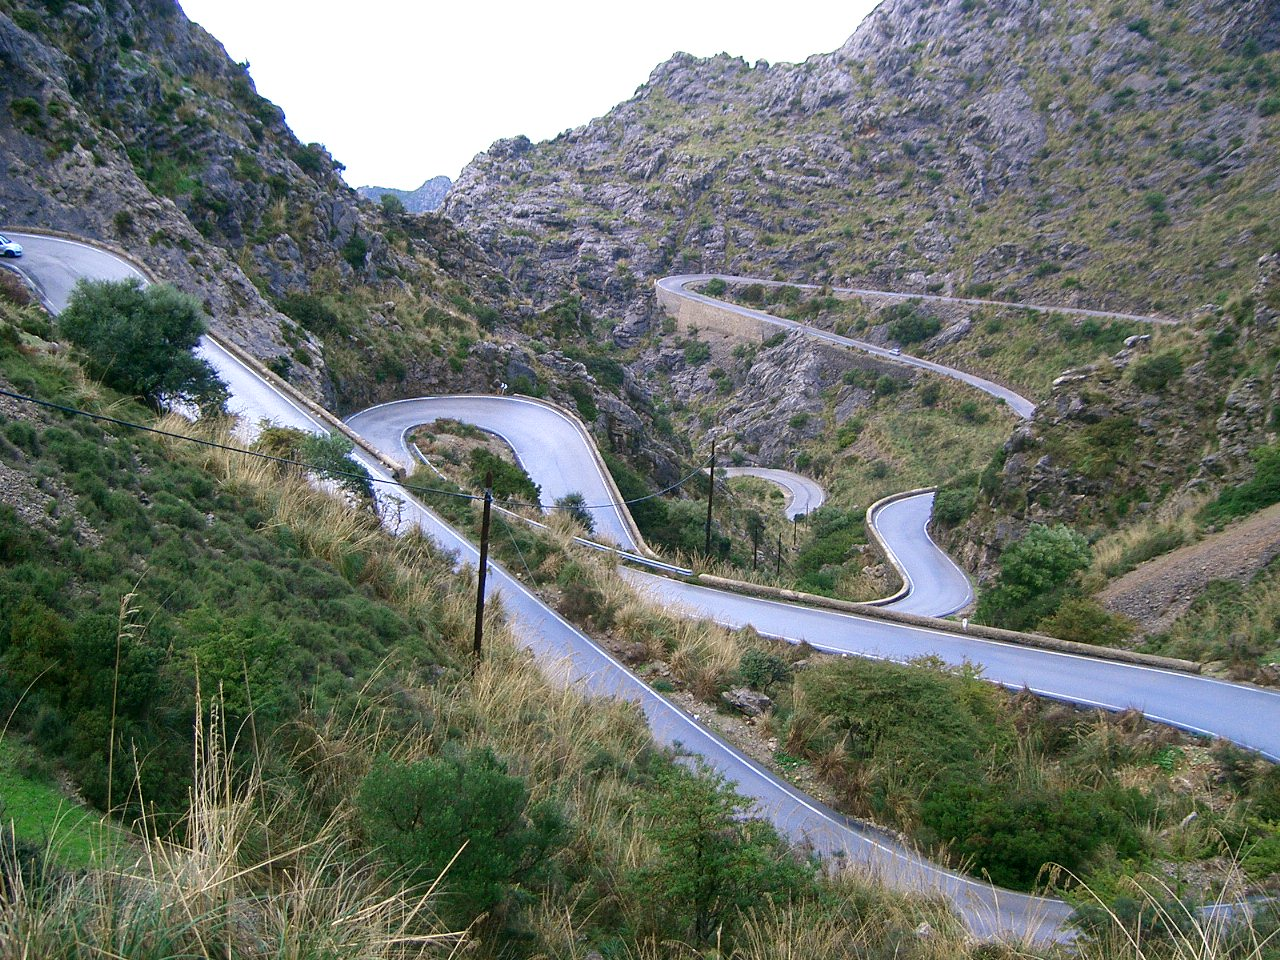 http://taxiescorca.com/fotos/Sa_Calobra_-_Mallorca.jpg